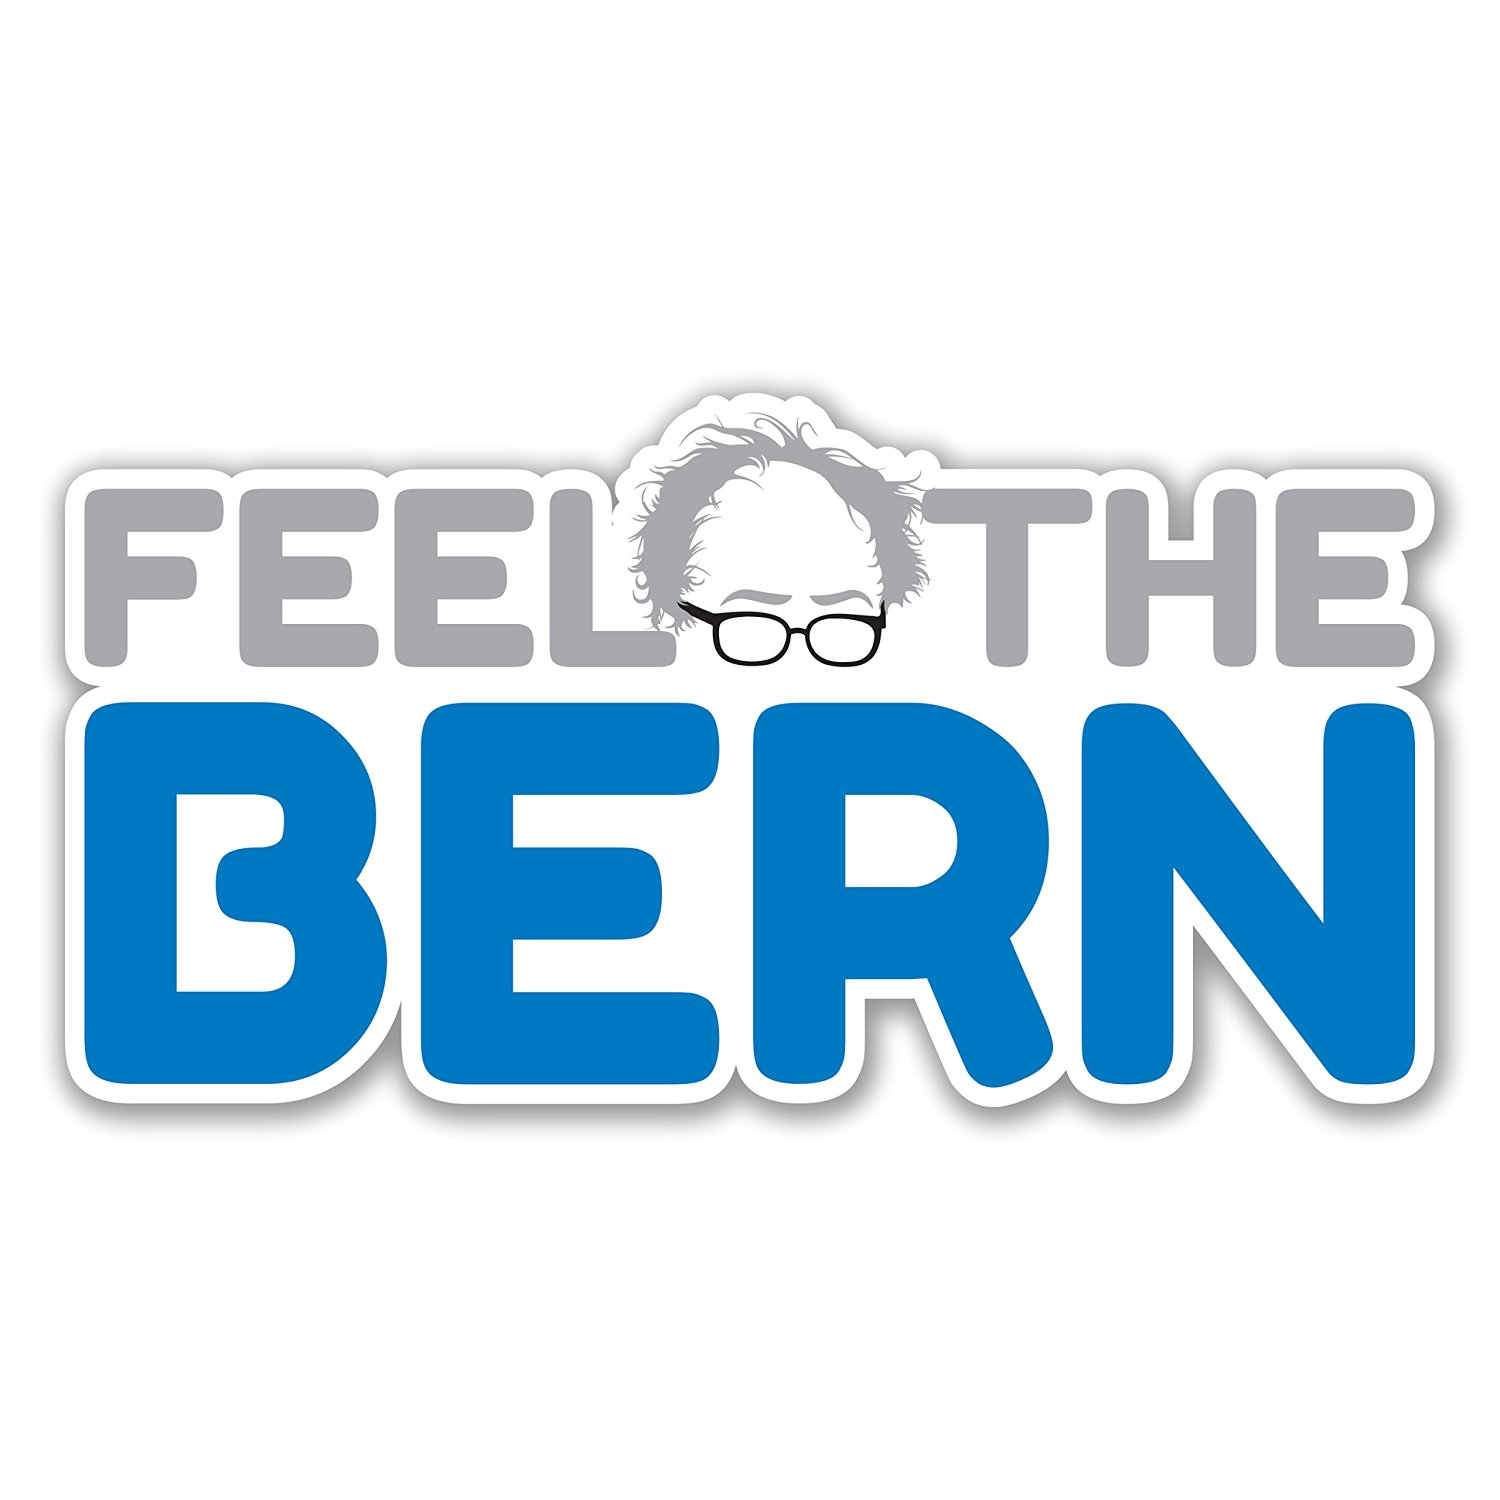 Feel the bern bernie sanders bumper sticker 2016 freedom liberal enlightened white car truck